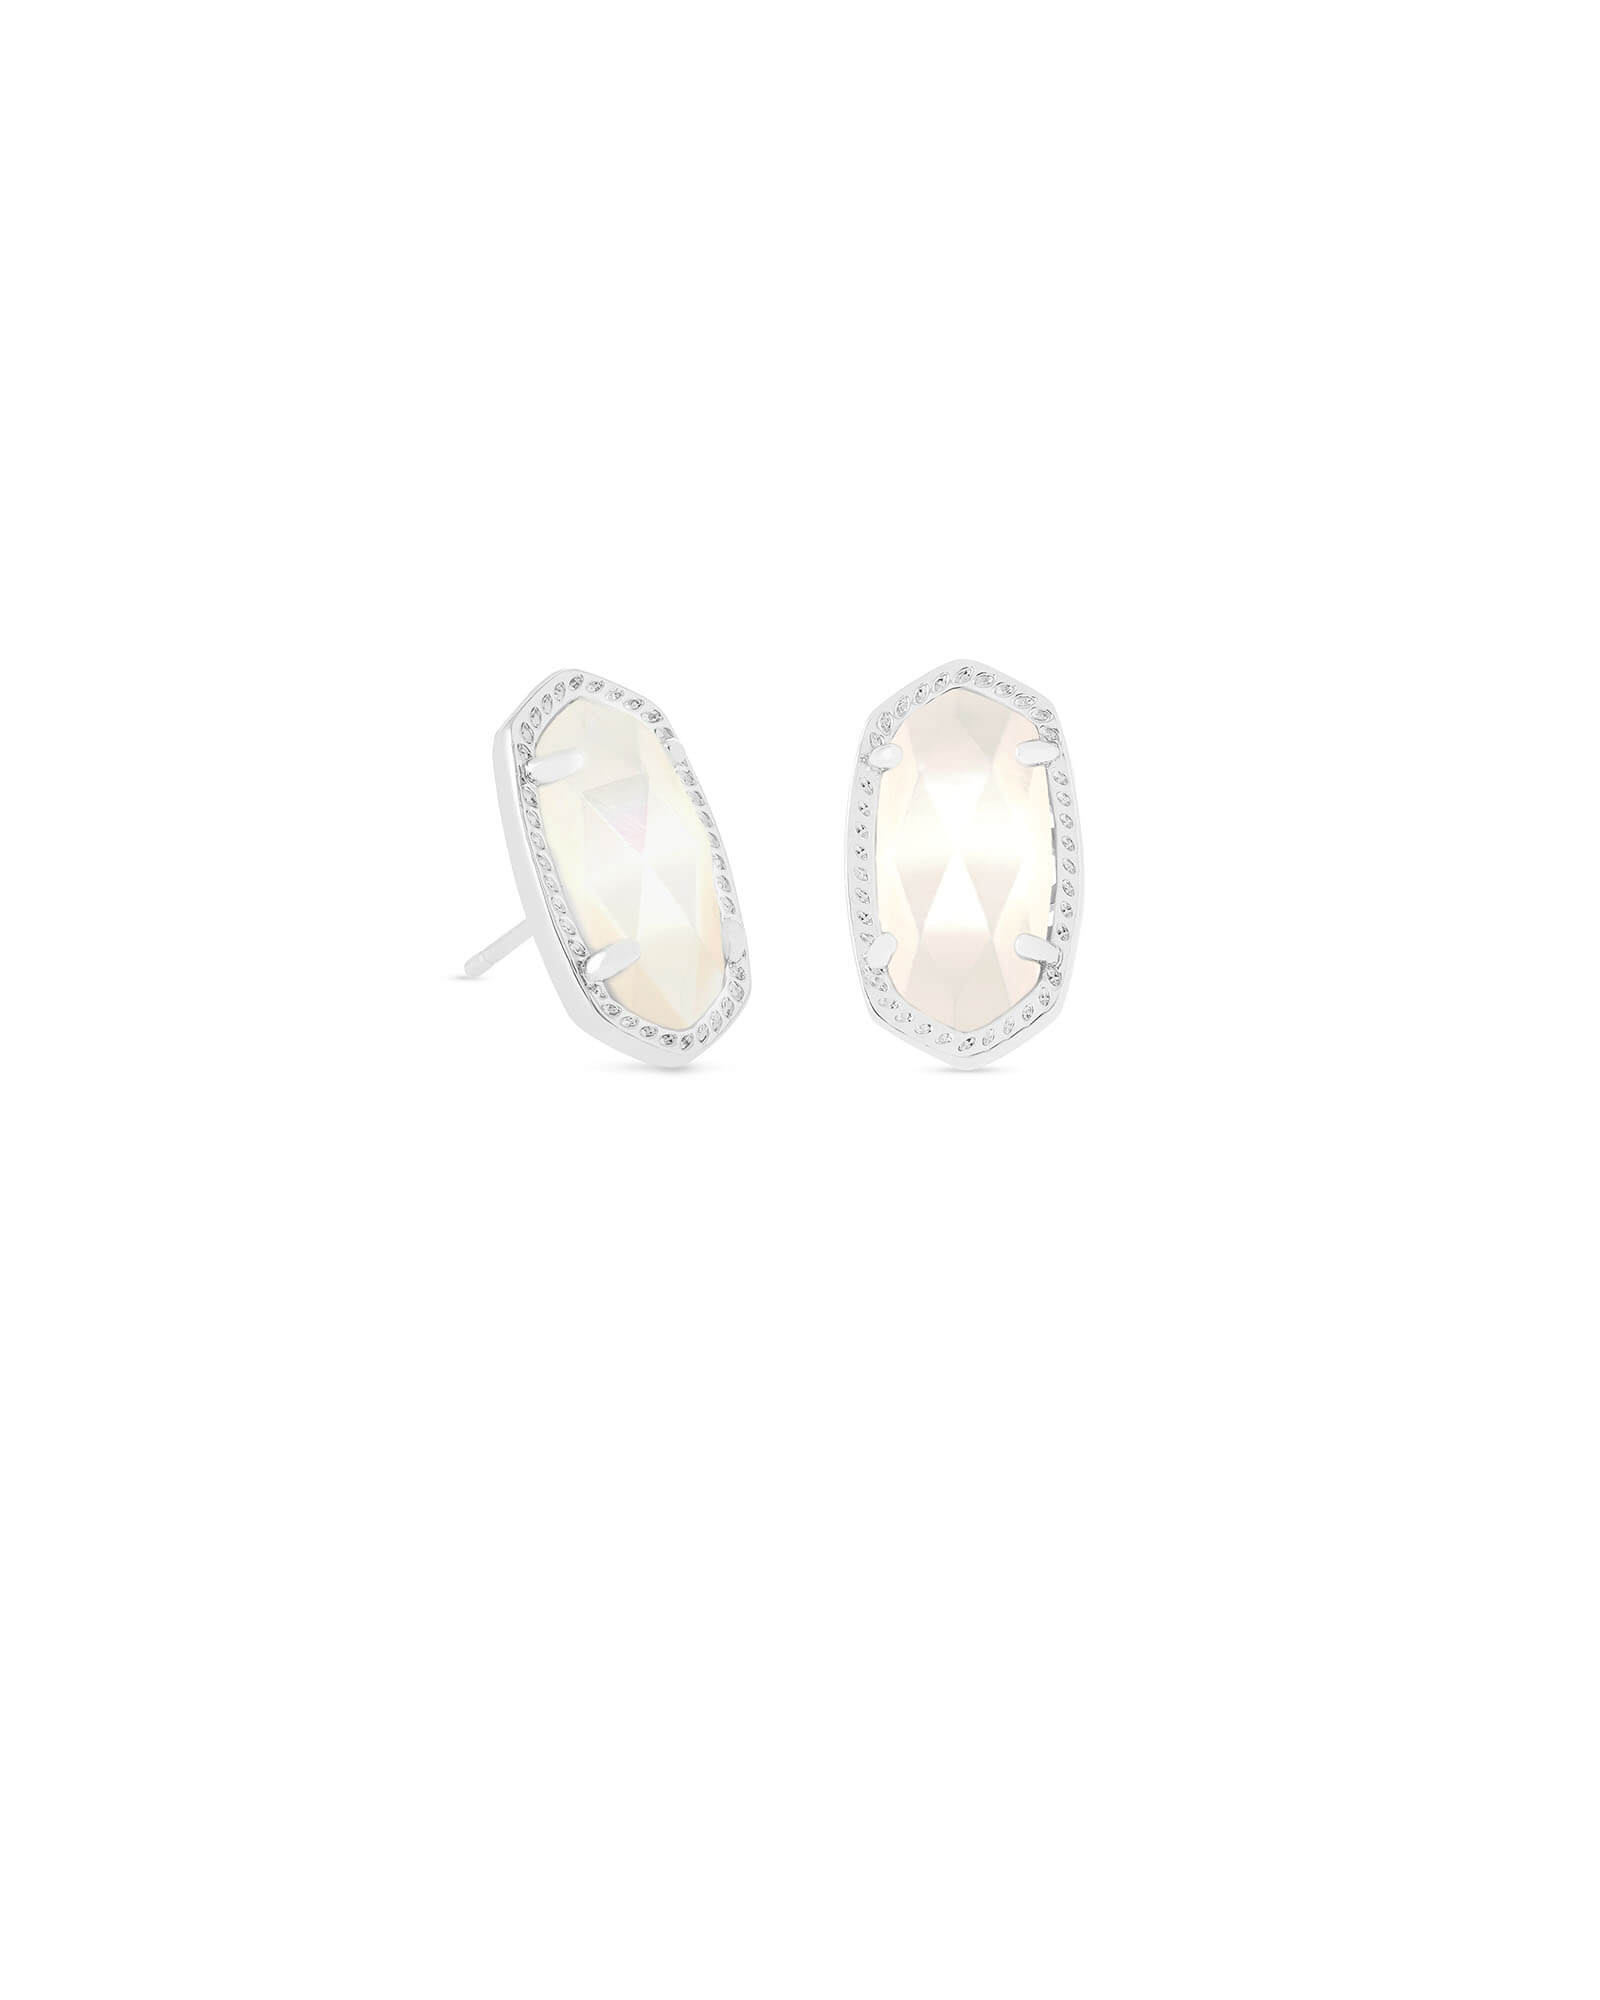 Ellie Silver Stud Earrings in Ivory Pearl